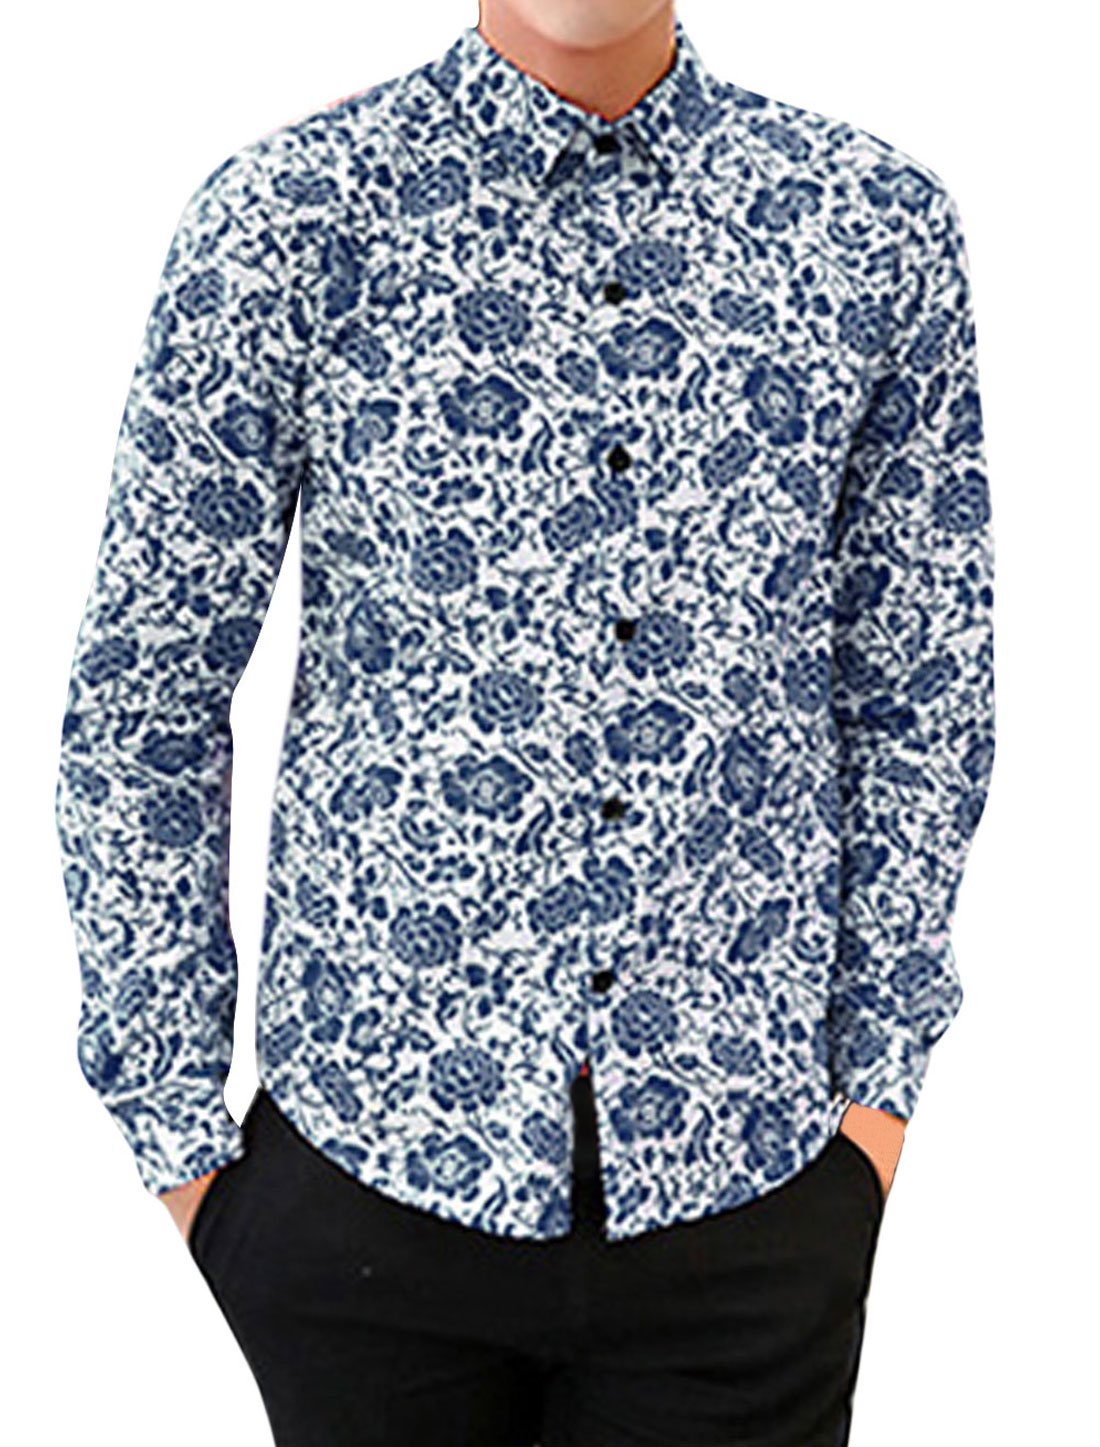 Button-Front All-over Flower Pattern Slim Fit Shirts for Men Navy Blue M